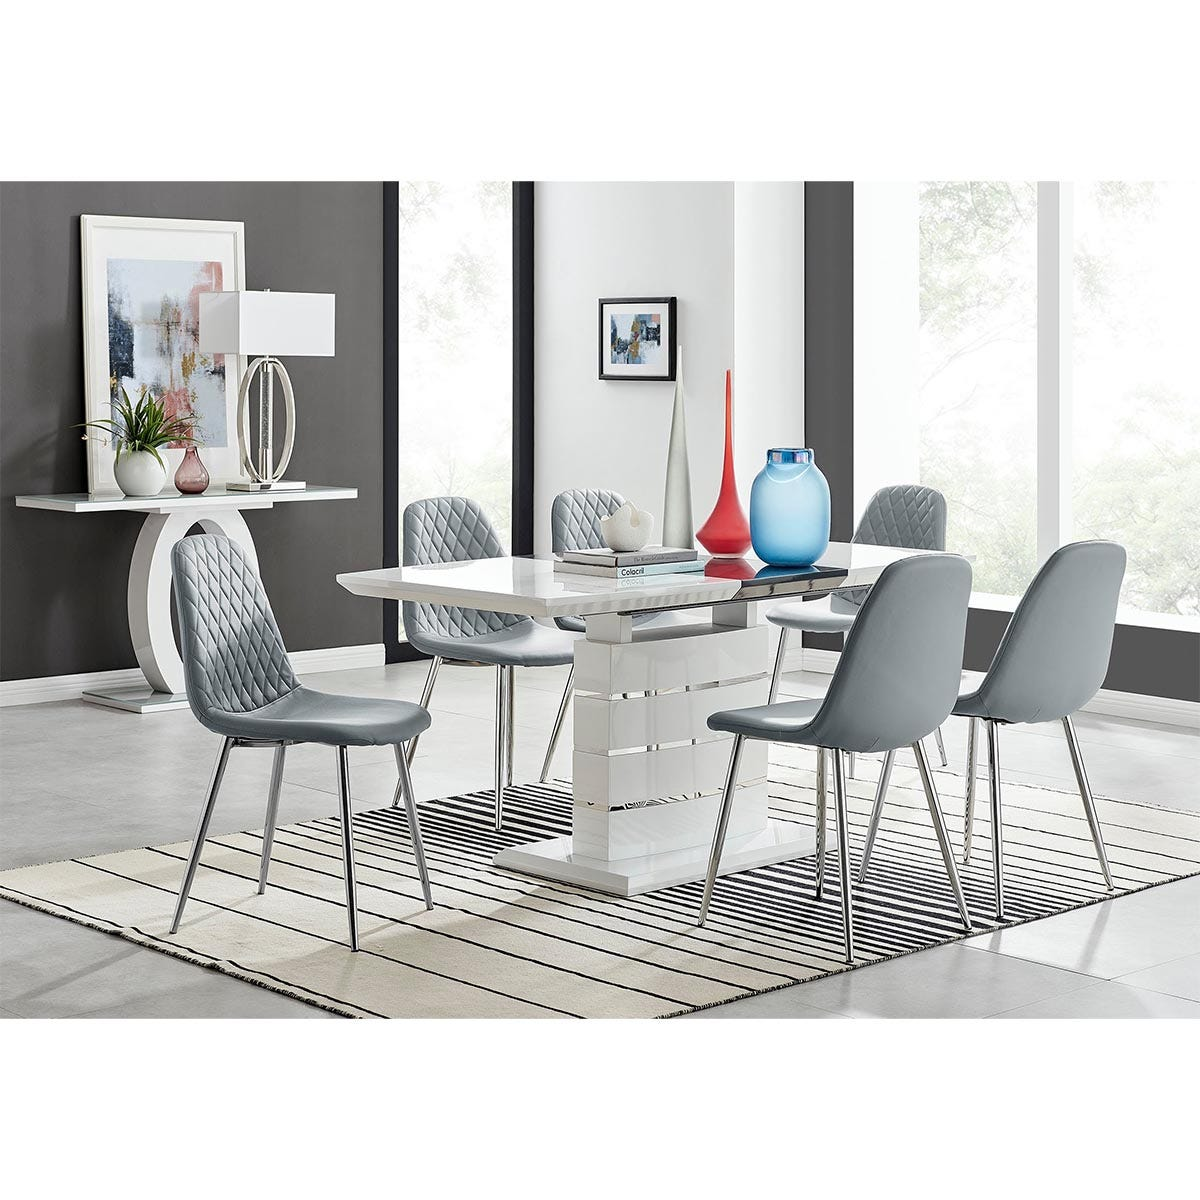 Furniture Box Renato 120cm High Gloss Extending Dining Table and 6 Grey Corona Silver Leg Chairs